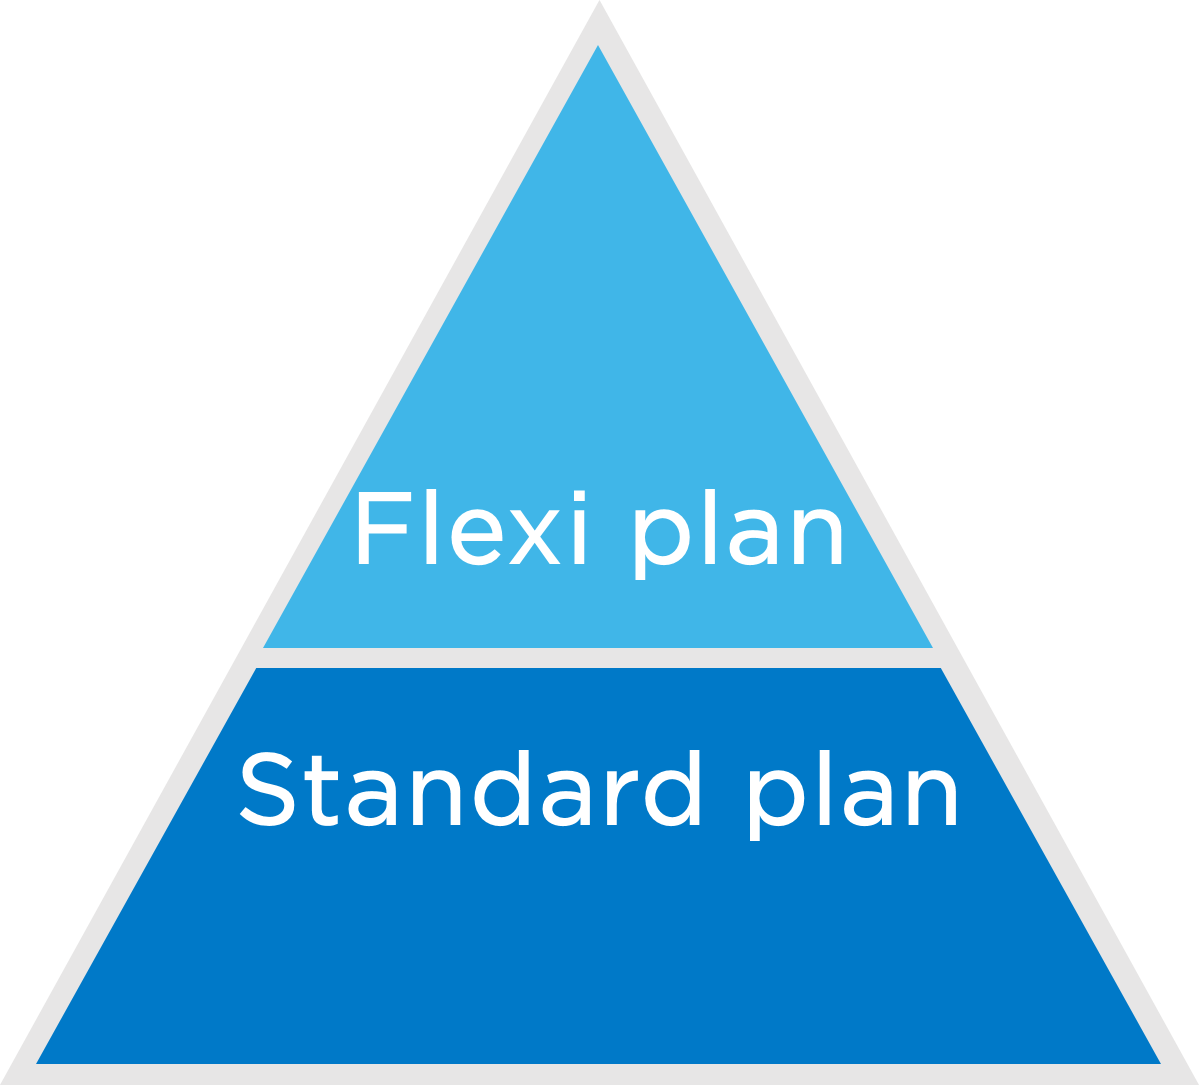 Standard and Flexi